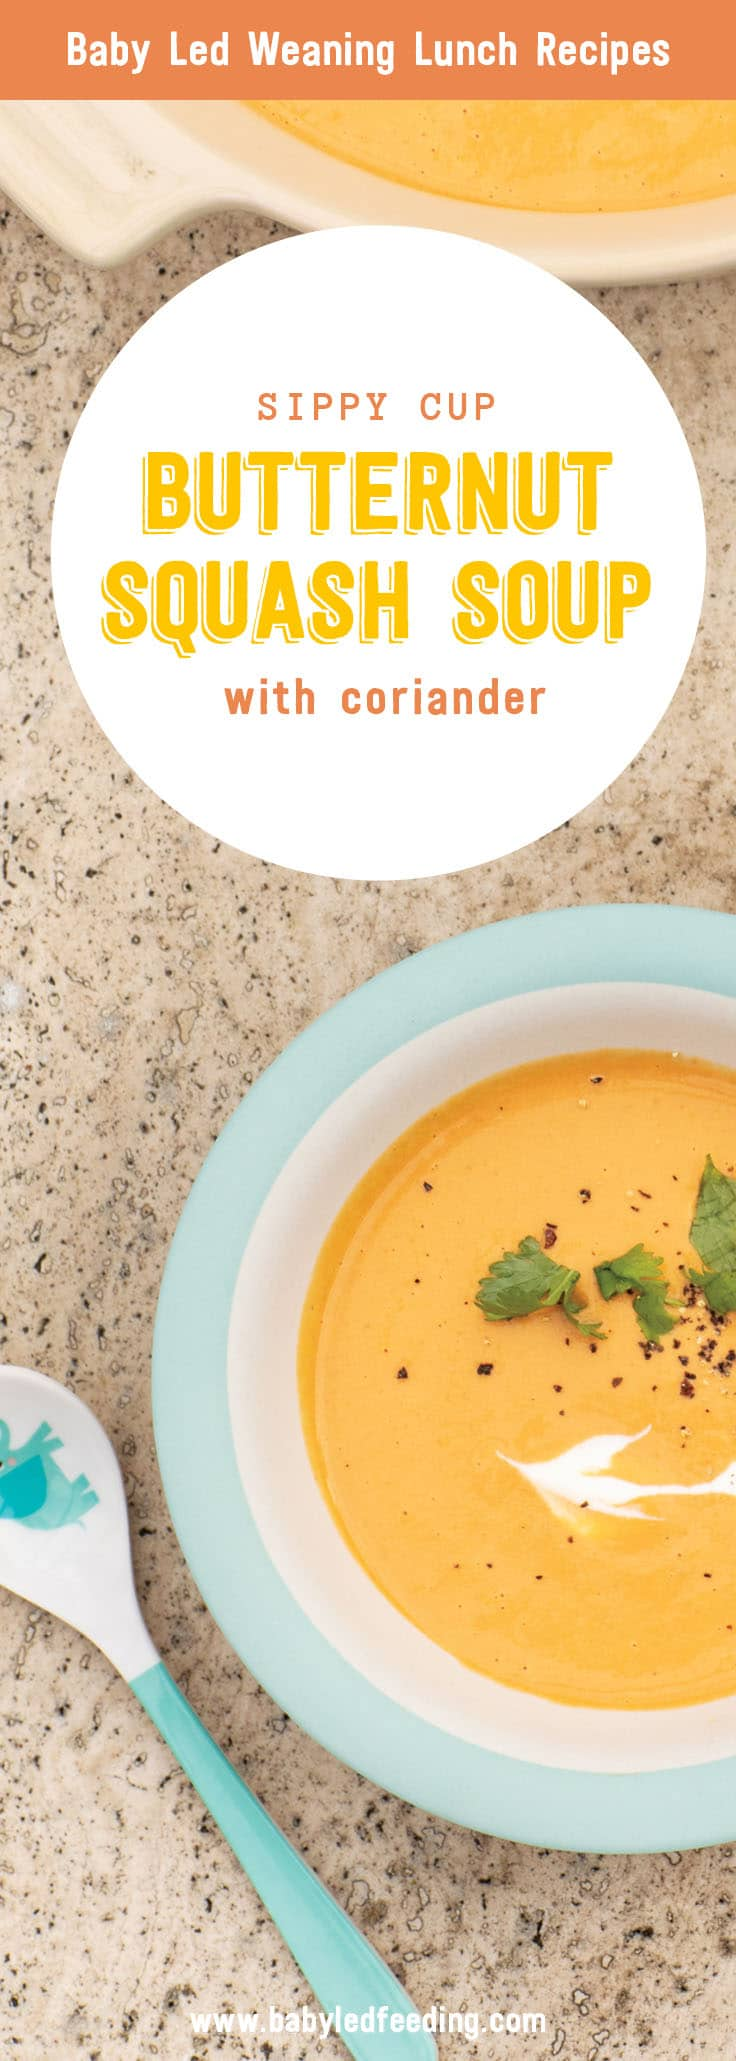 Baby Led Feeding Pinterest Butternut Squash Curried Soup